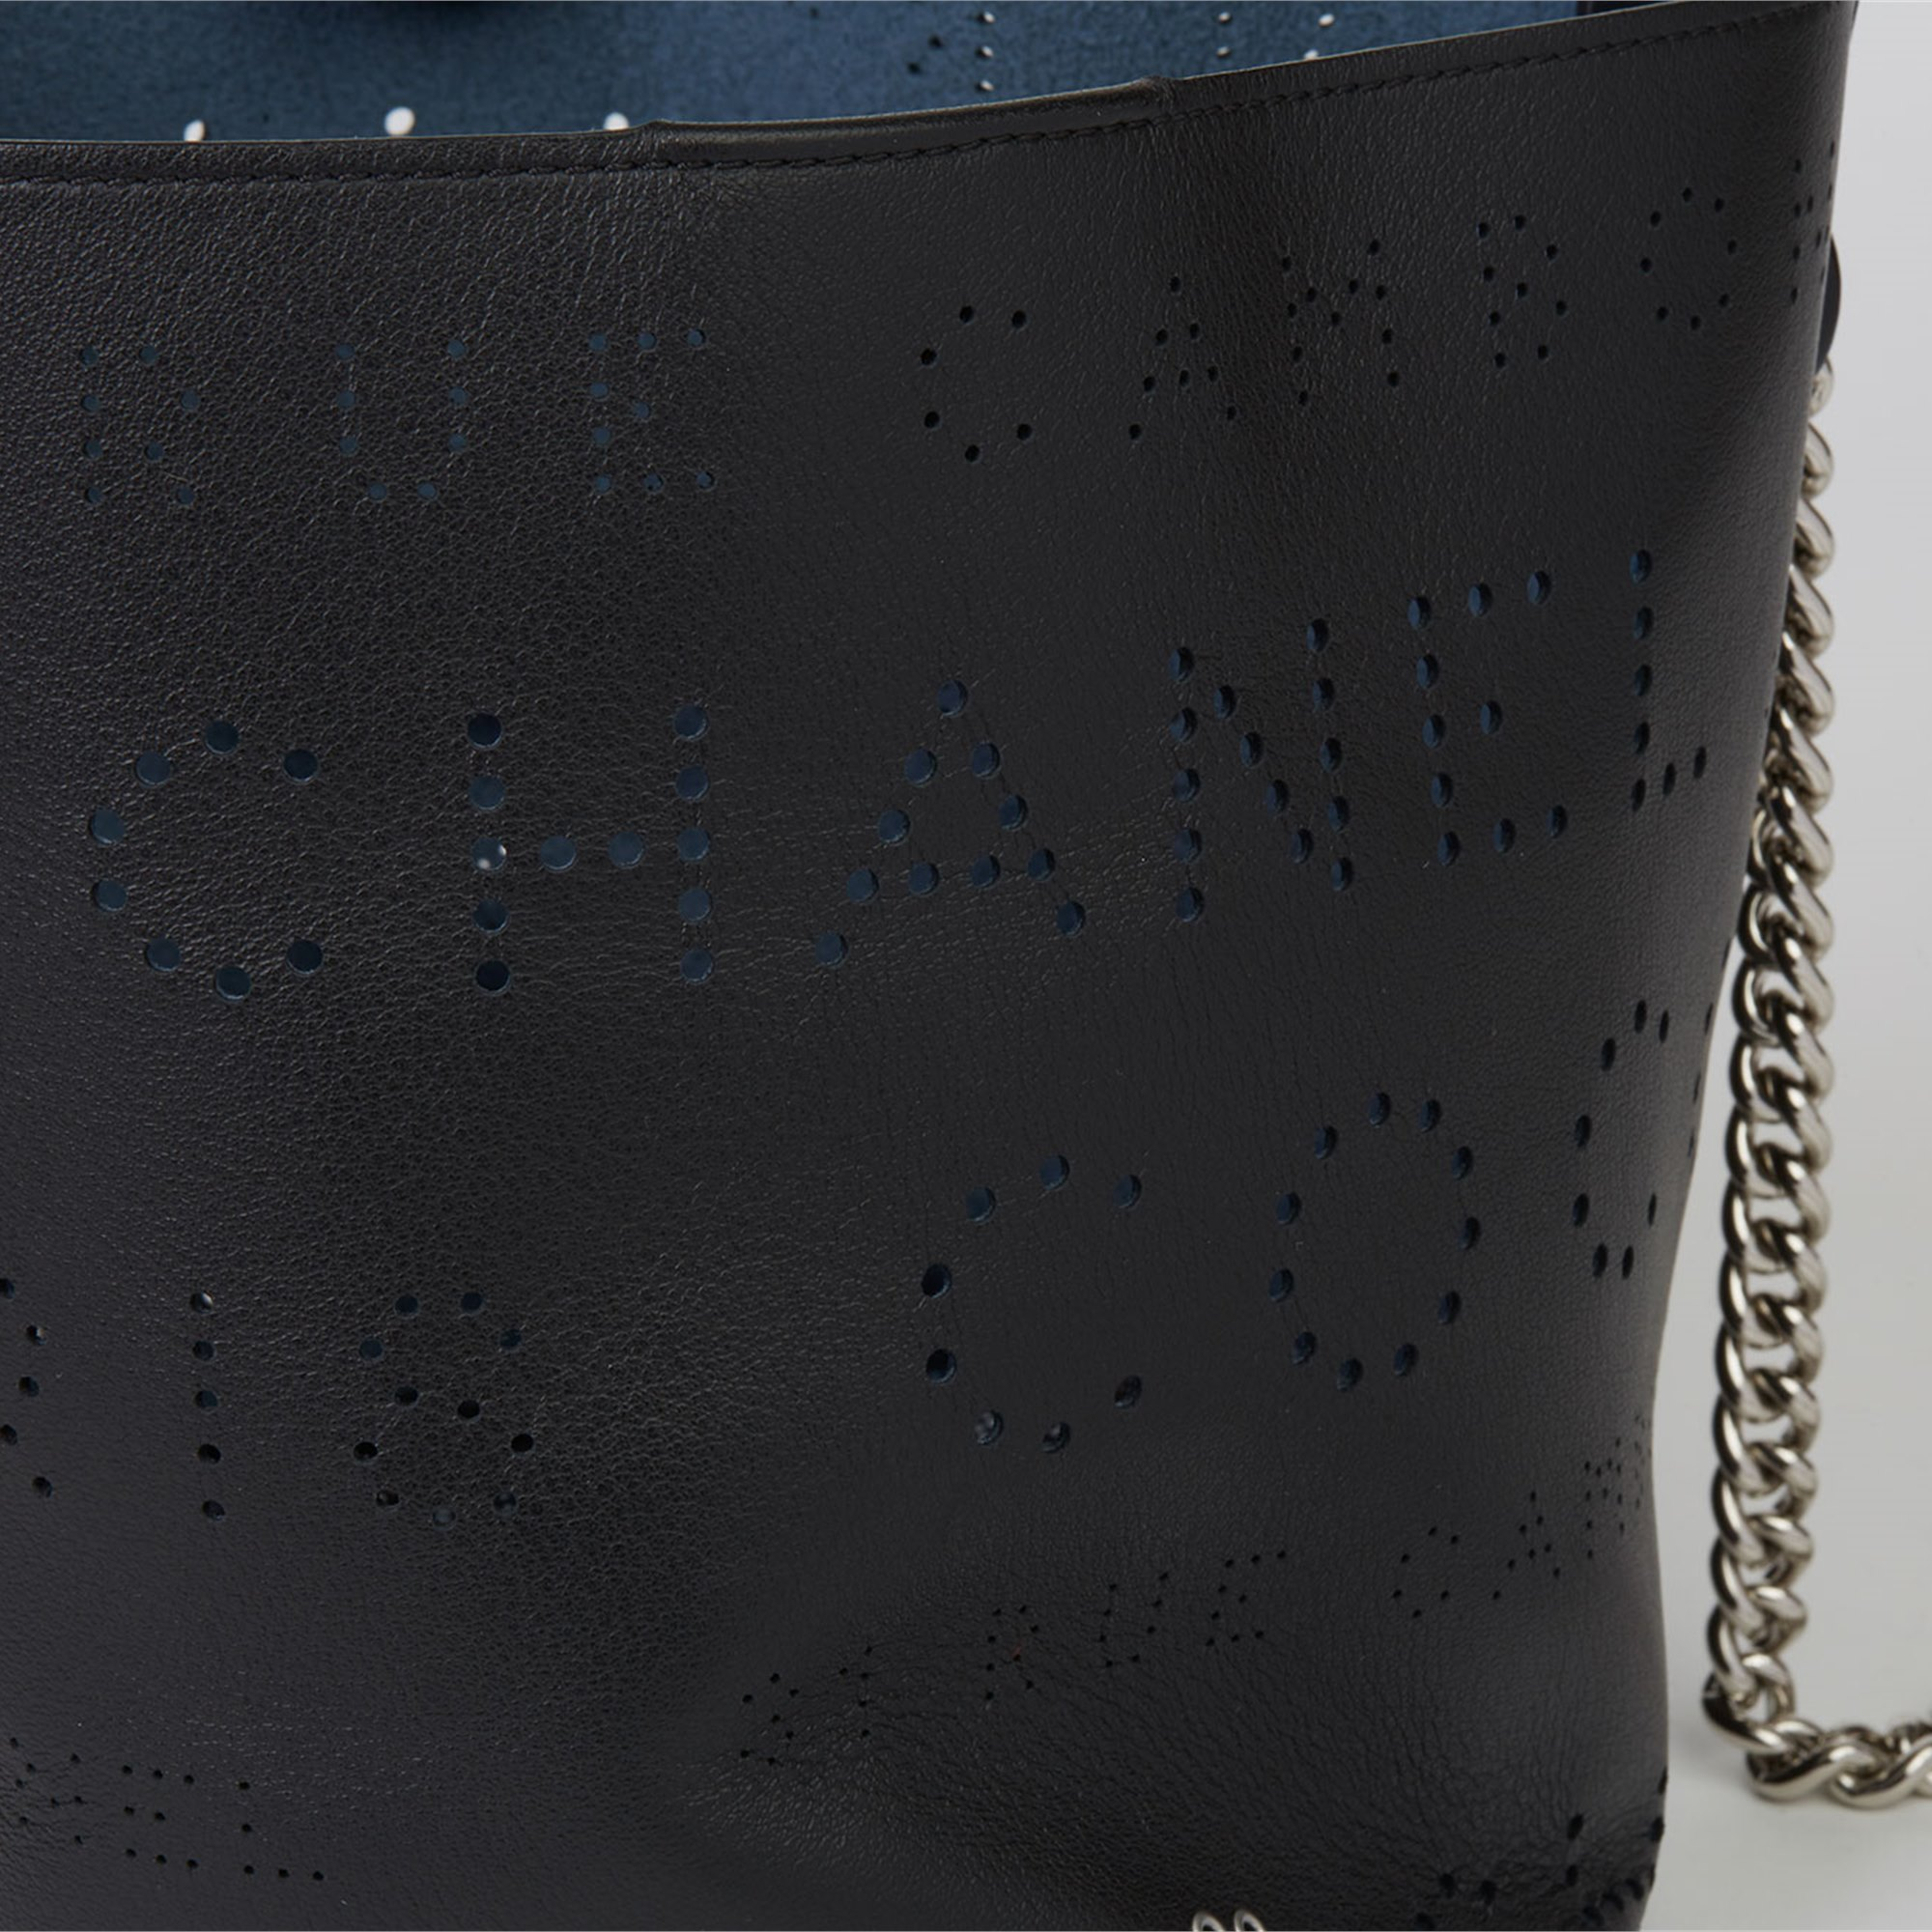 Chanel Black Perforated Calfskin Leather Logo Eyelets Bucket Bag with Tweed Pouch